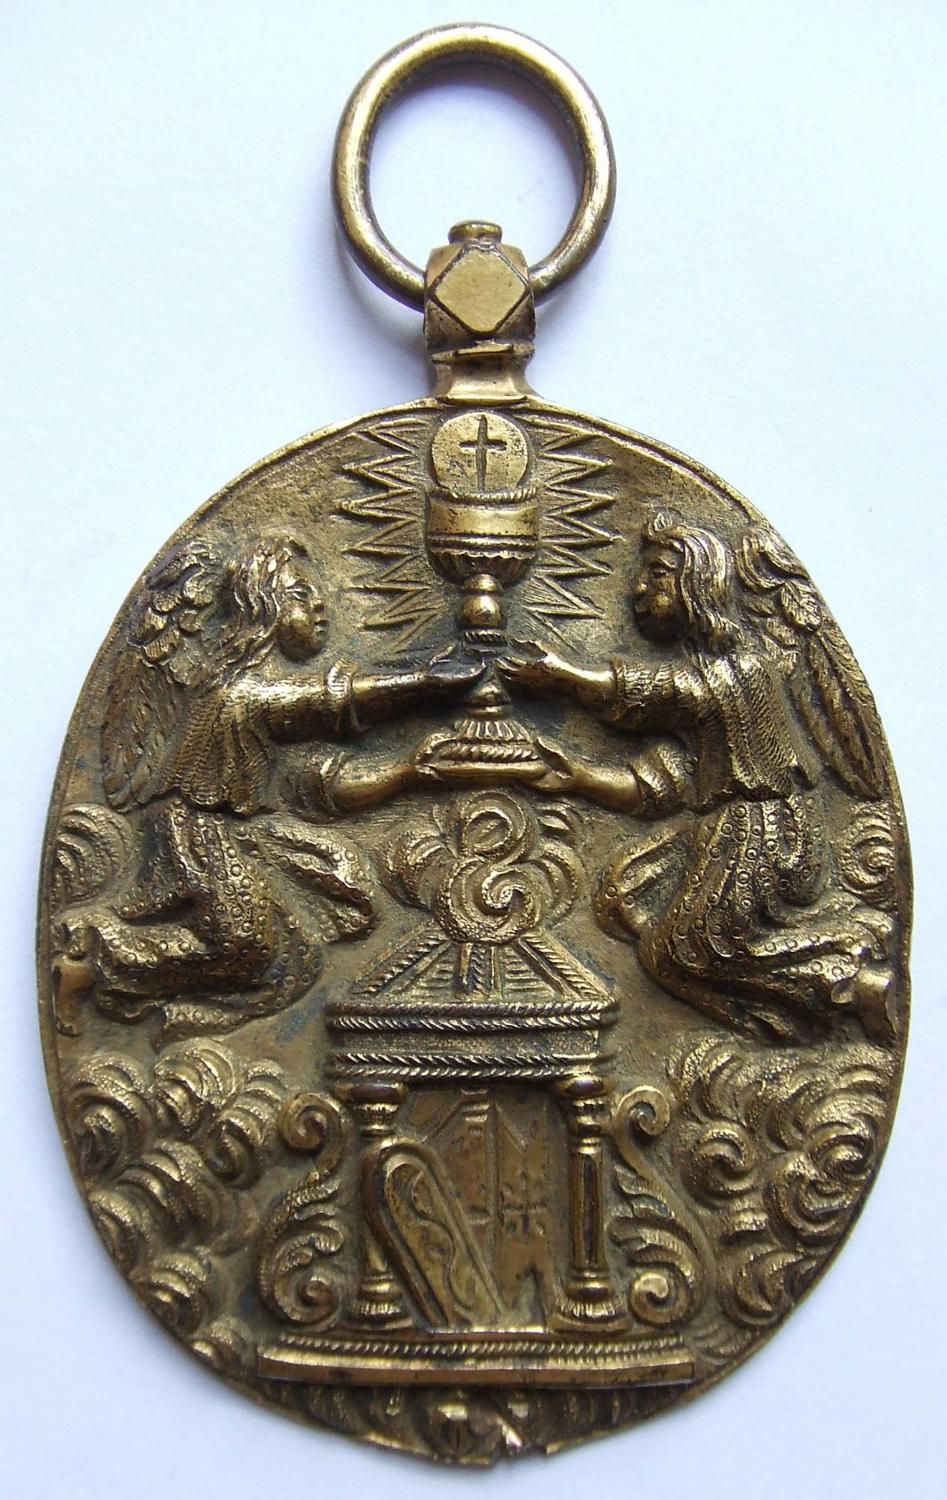 A Rare 17th Century Portugese Gilt-Bronze Medallion